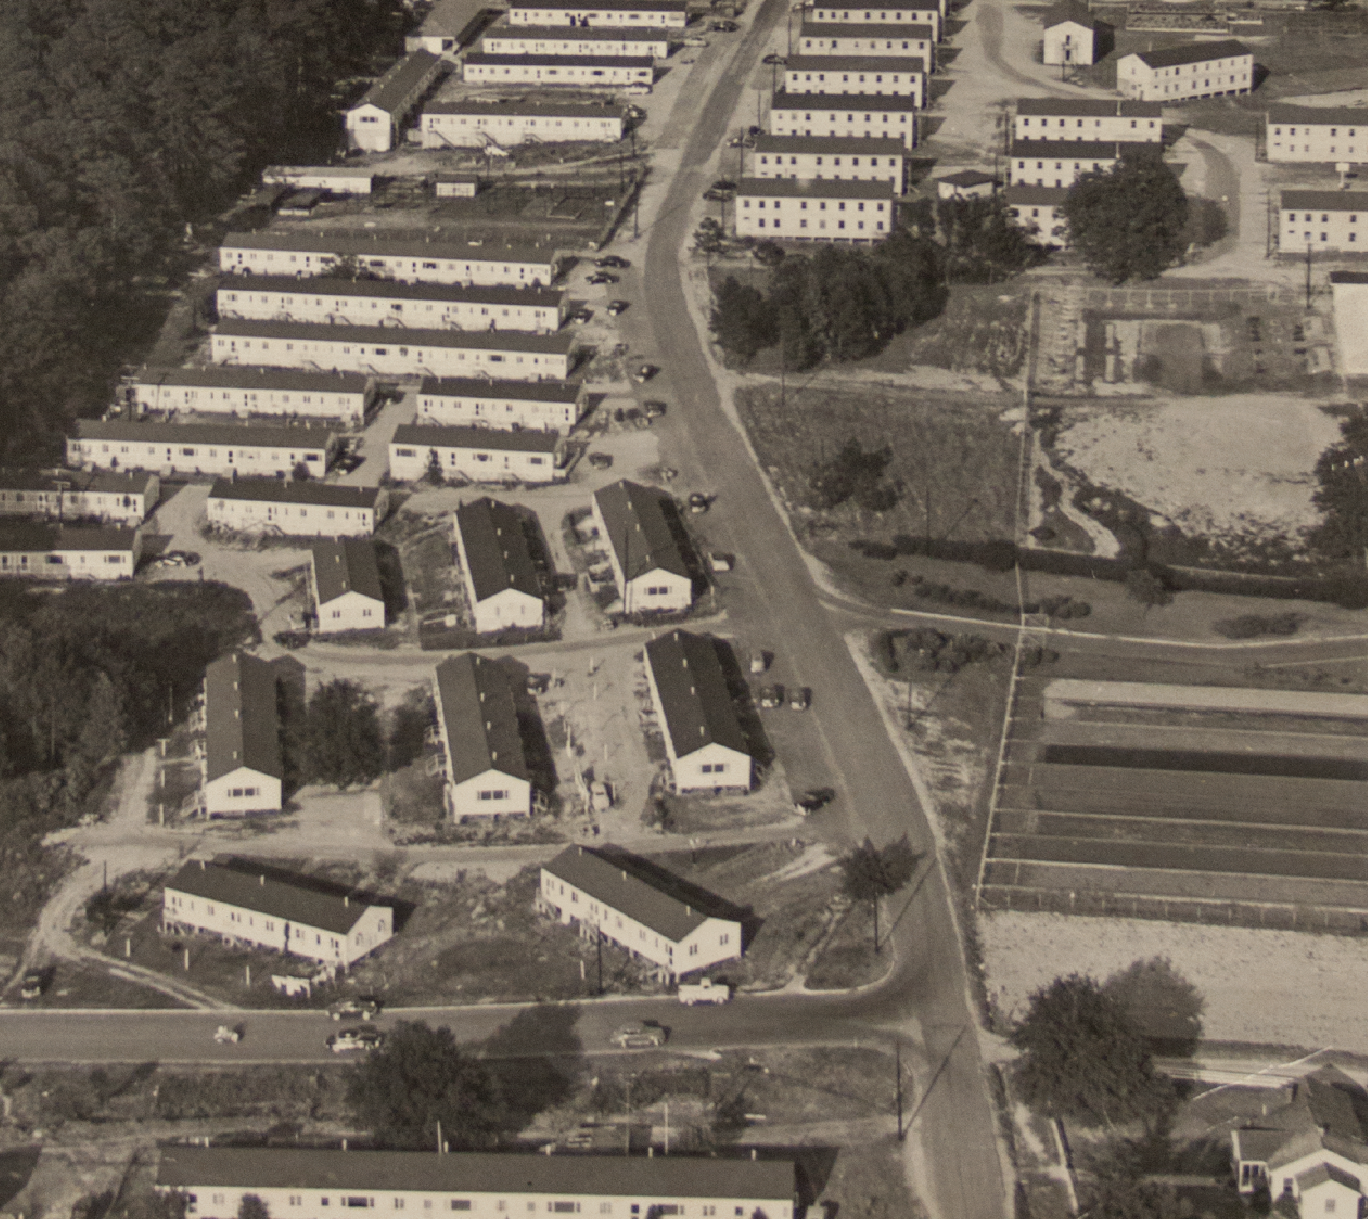 Graves apartments for married students and barracks for single men located on Samford Avenue, 1947.